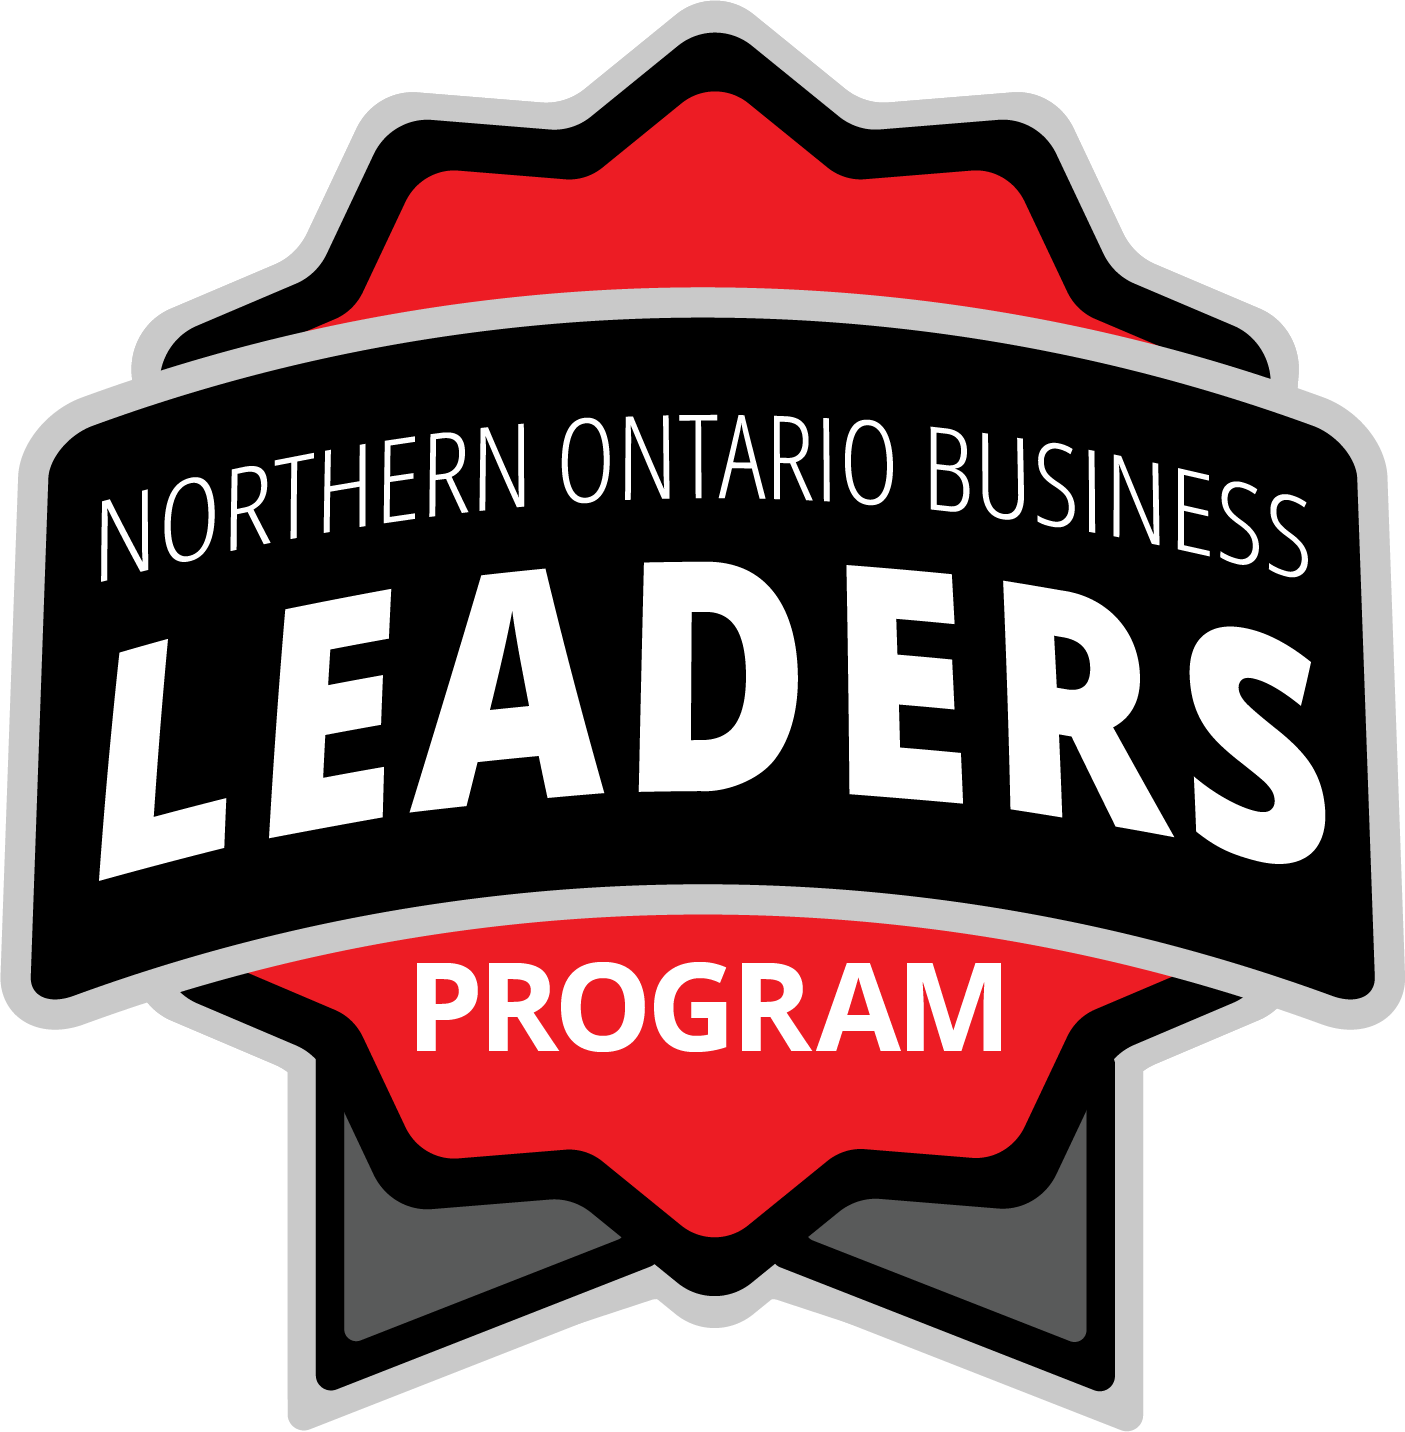 Northern Ontario Business Leaders Program